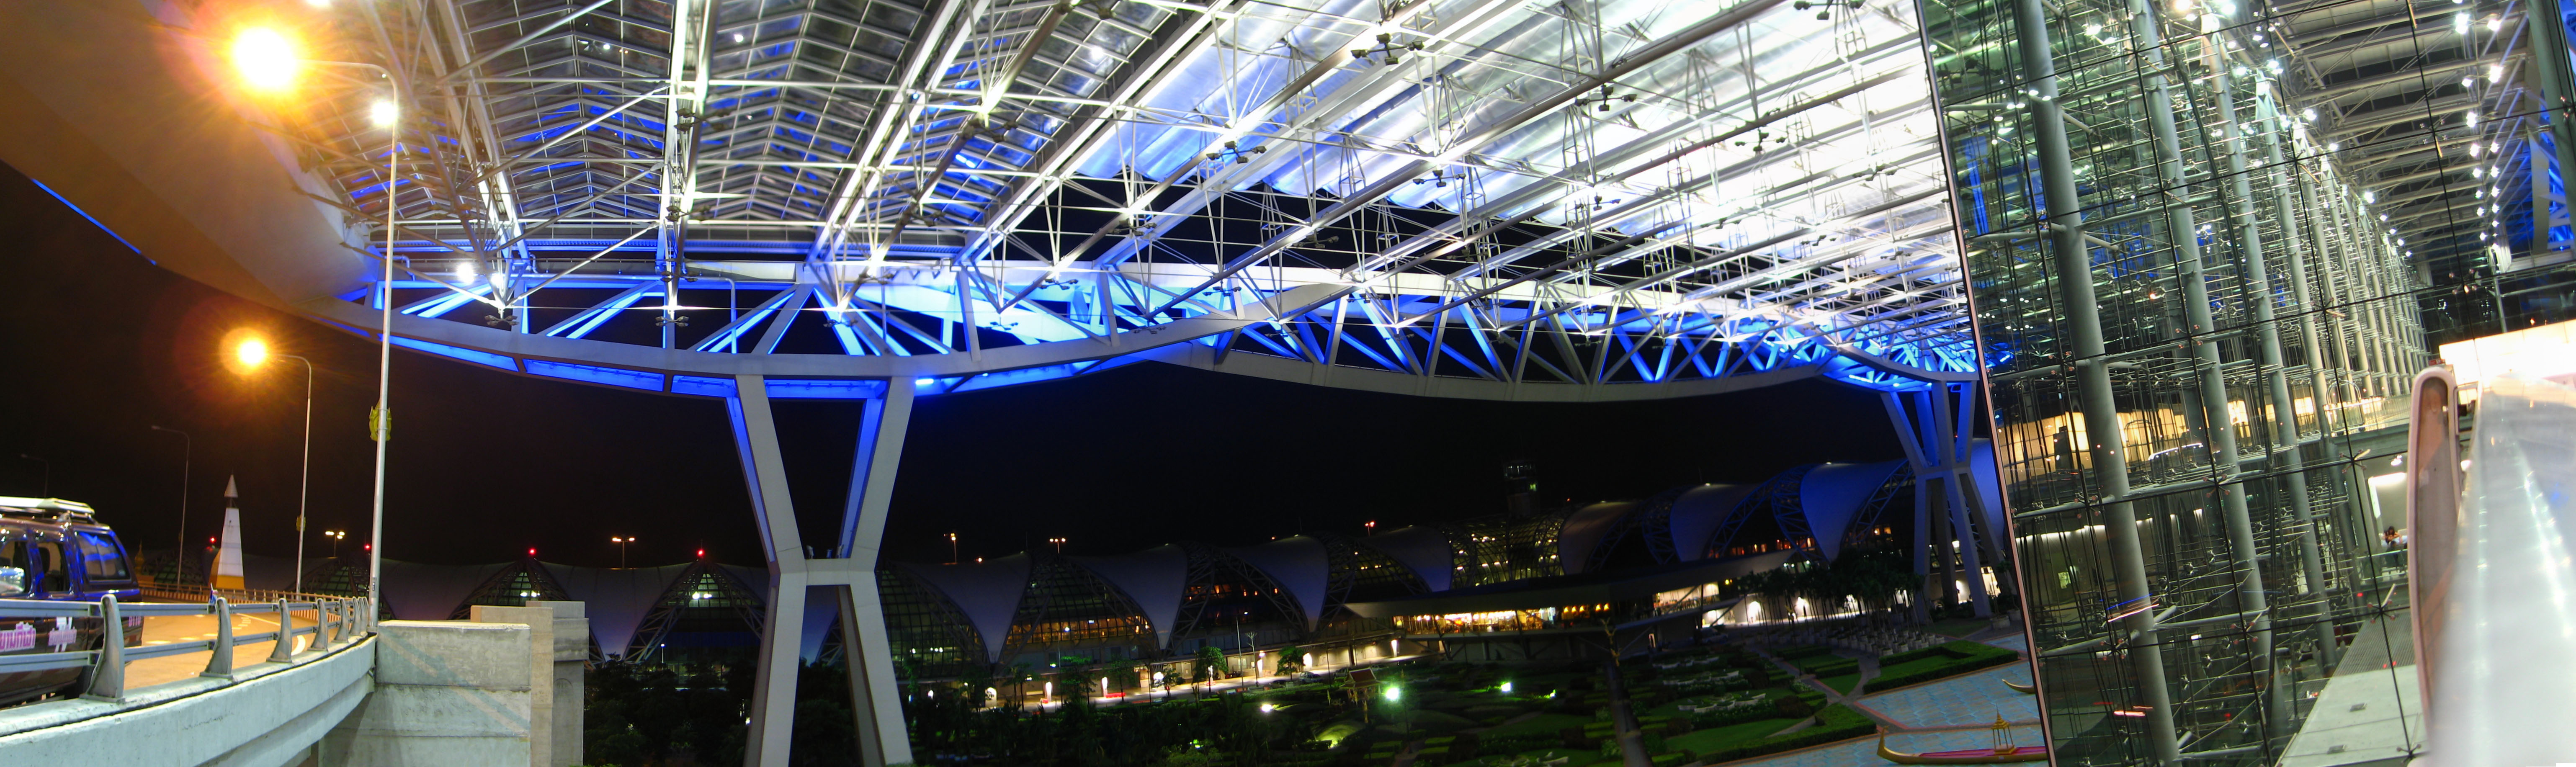 Inner courtyard and terminal structure by night